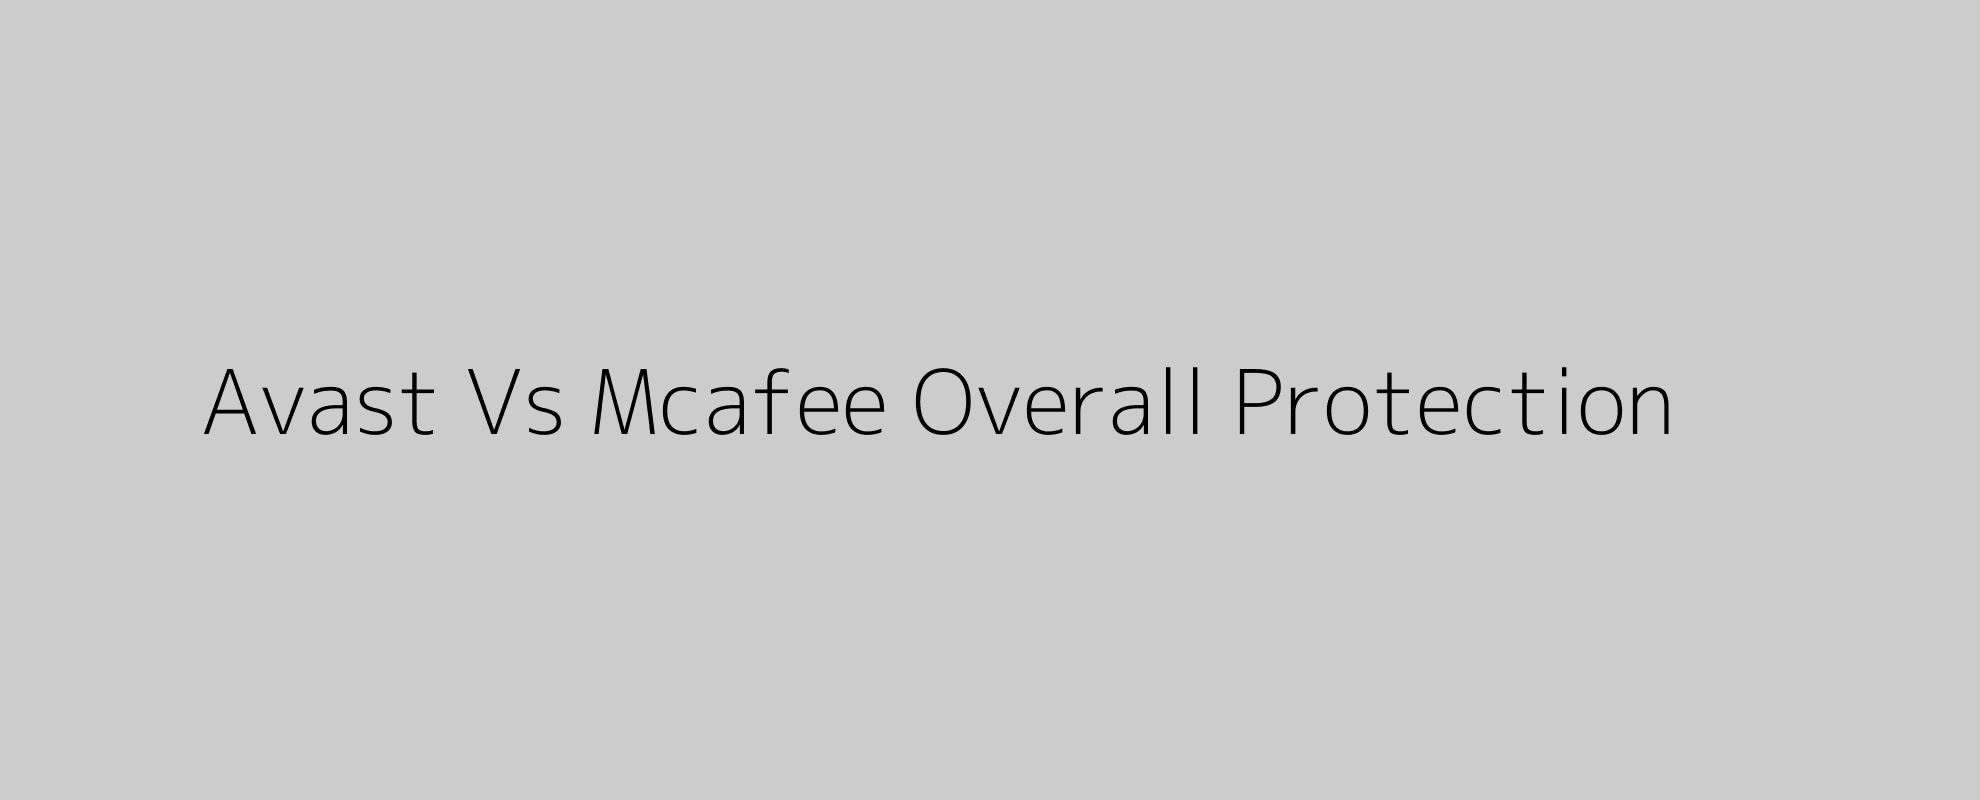 Avast Vs Mcafee Overall Protection